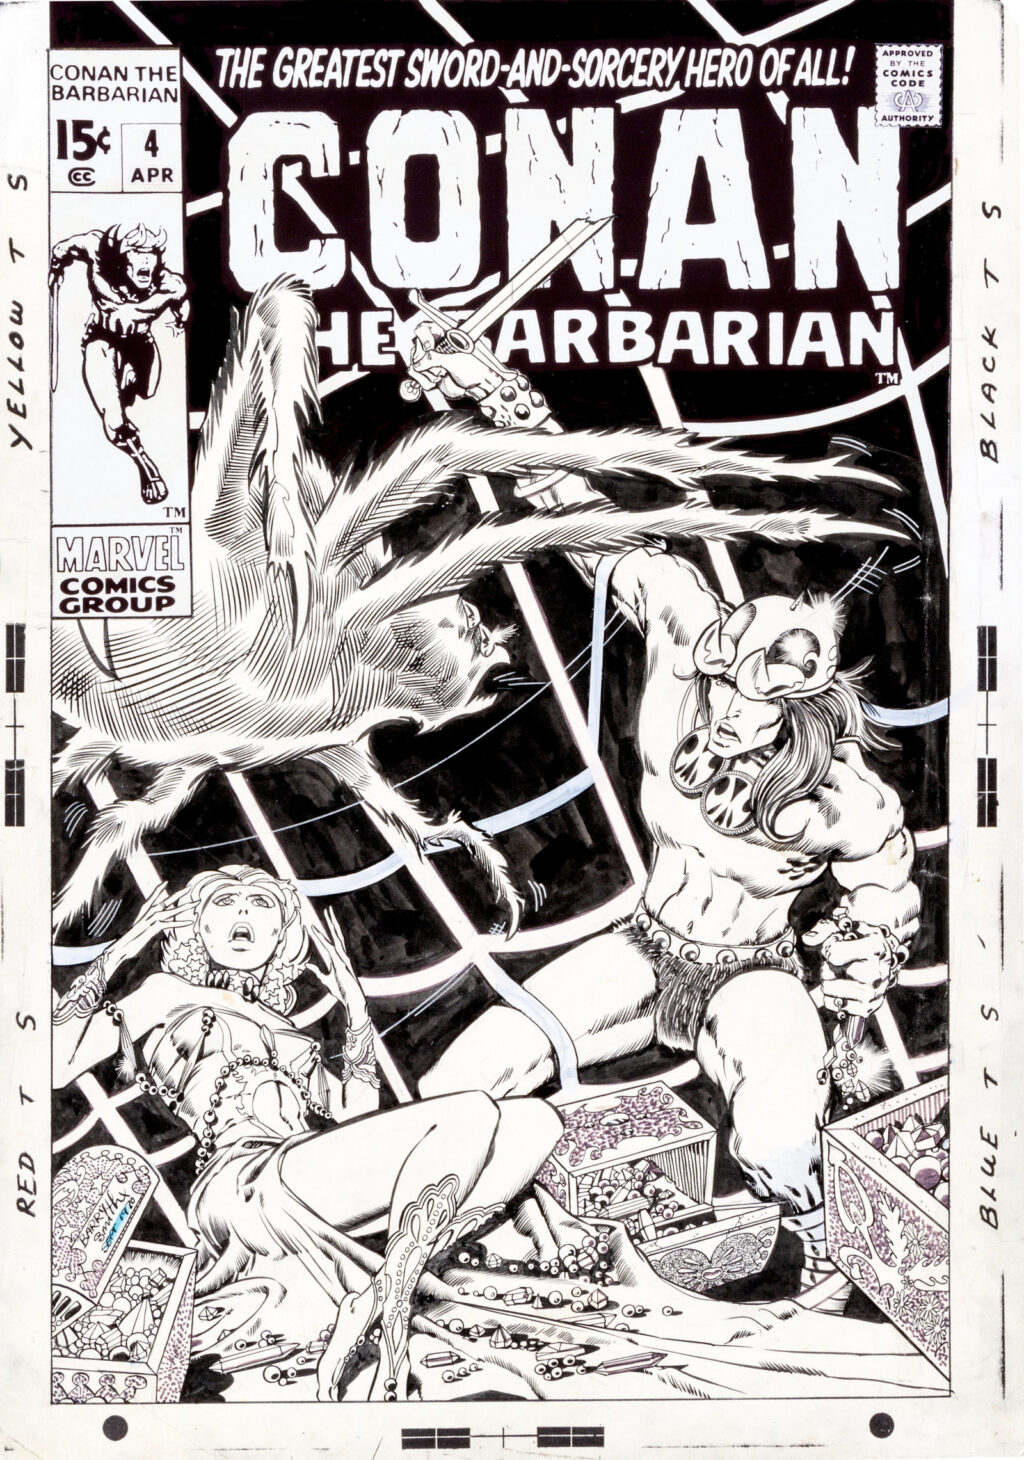 Conan the Barbarian issue 4 cover by Barry Smith